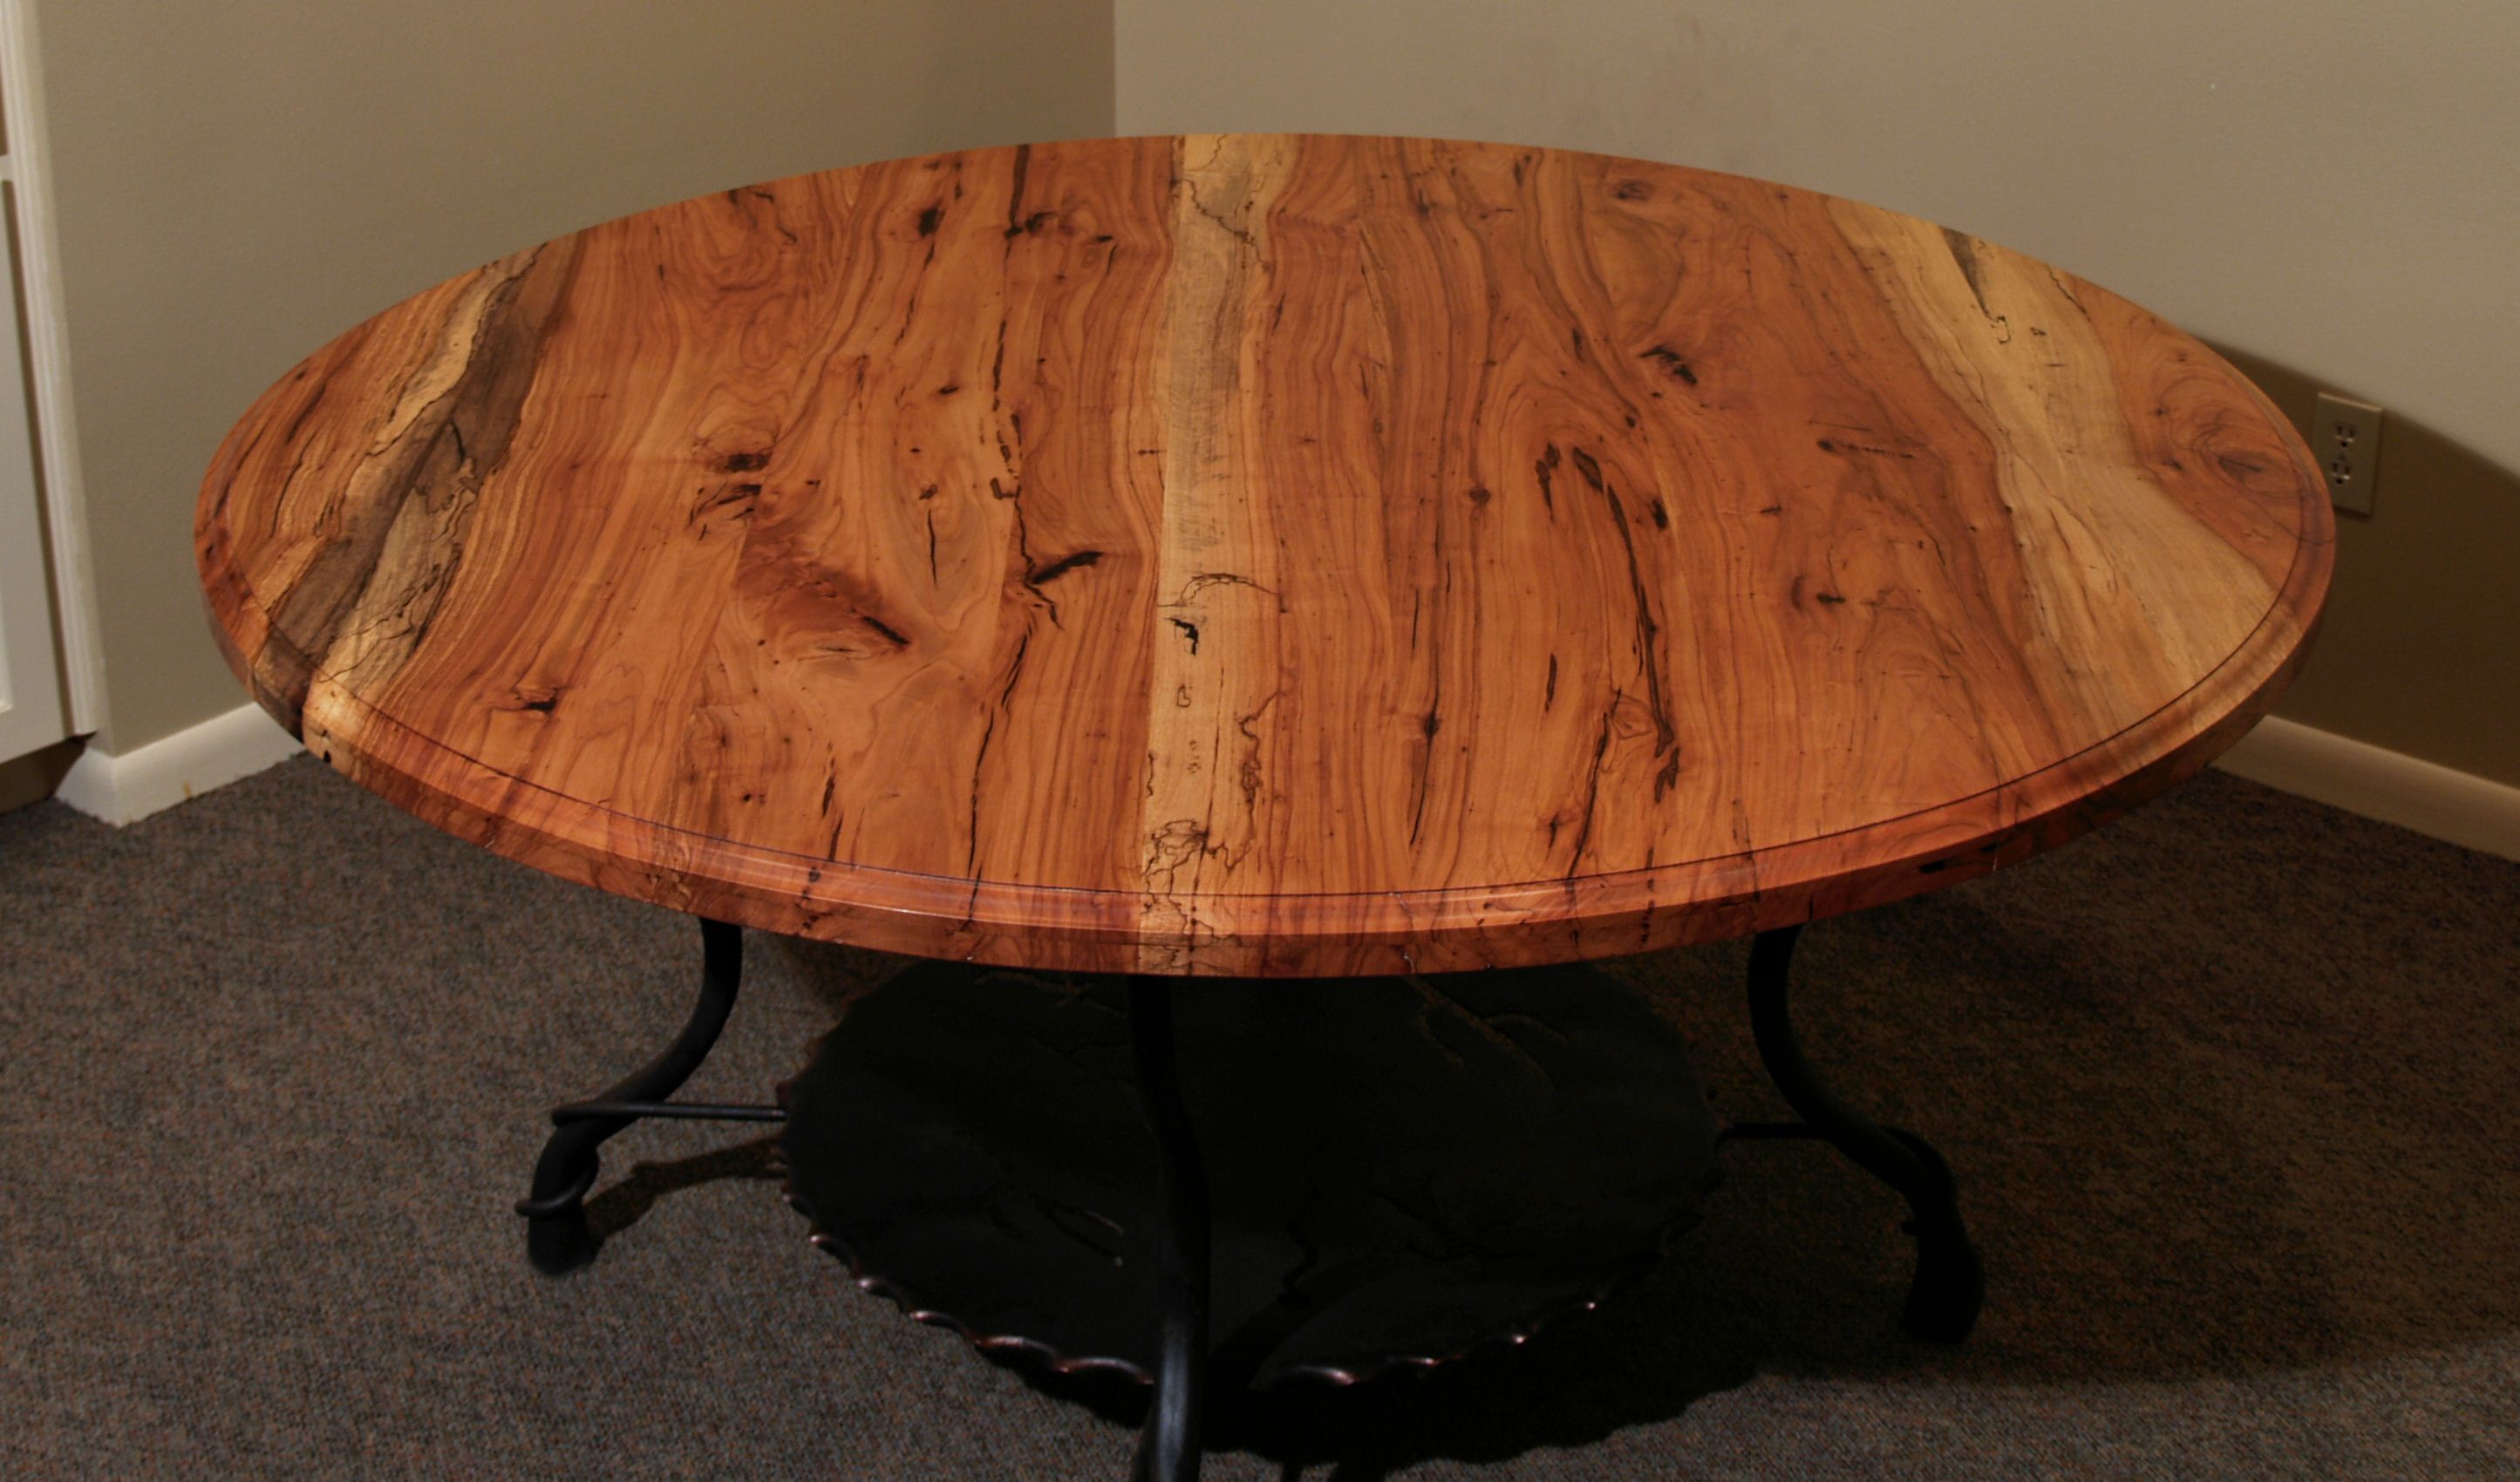 Spalted Pecan Face Grain Custom Wood Table Top